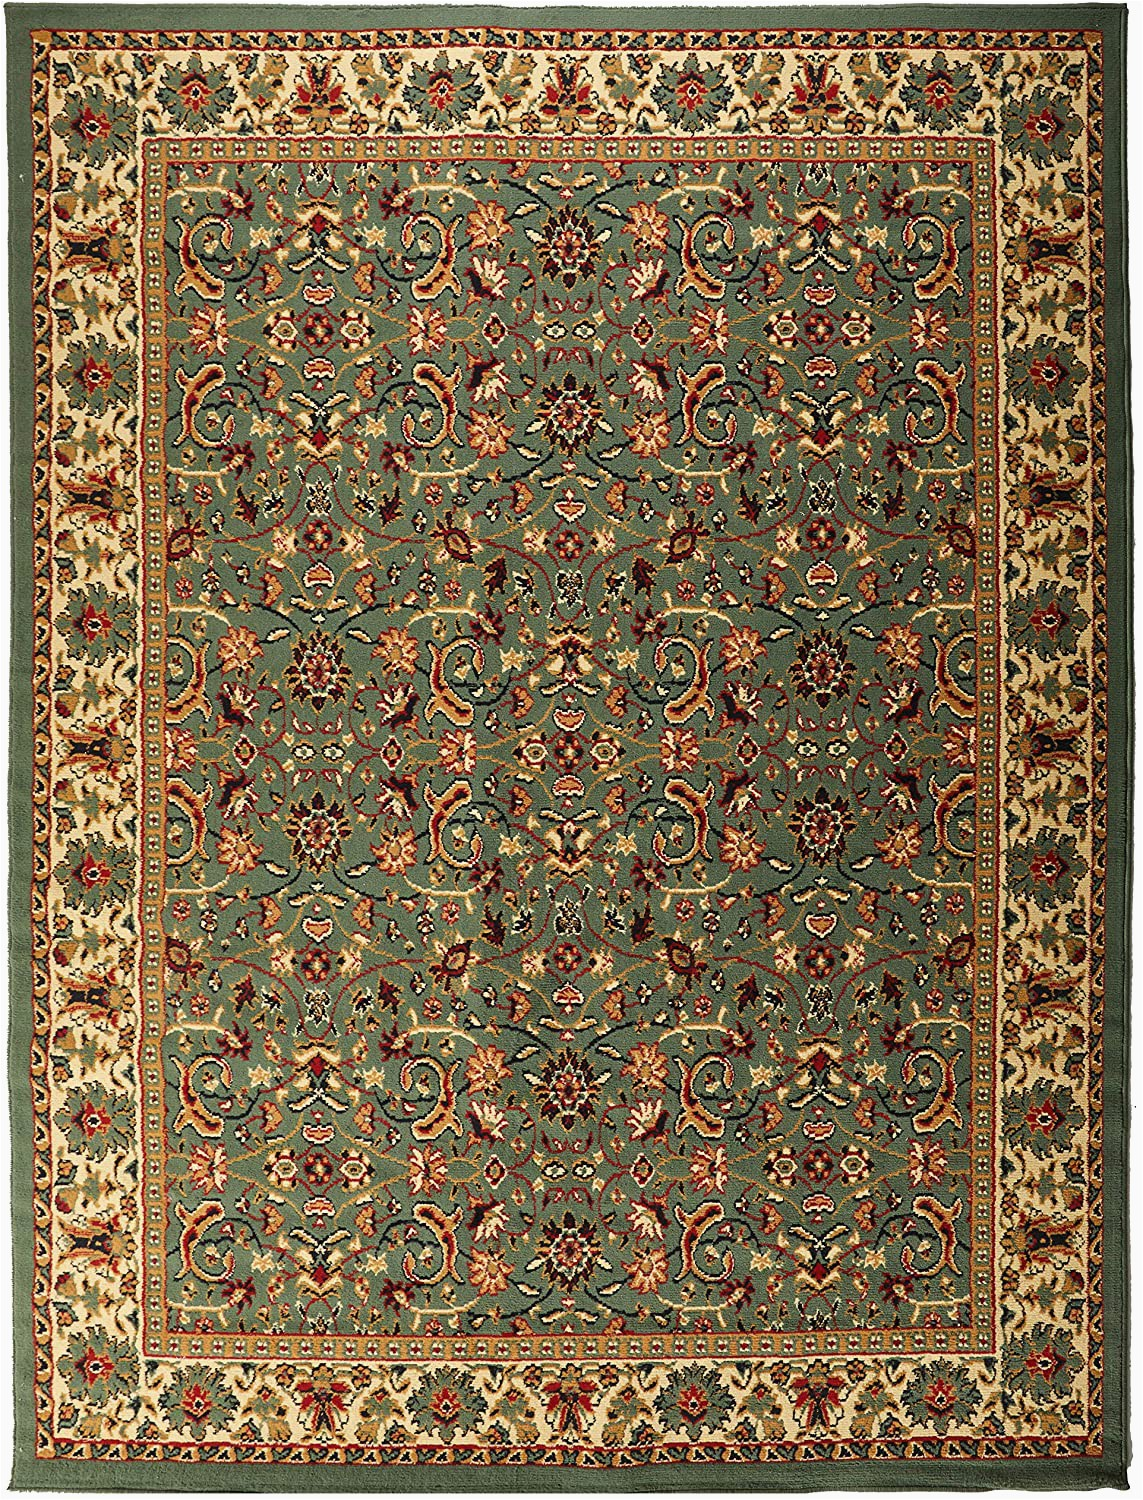 Living Room area Rugs Amazon Traditional area Rug Medallion Green Rugs for Living Room 8x10 Under 100